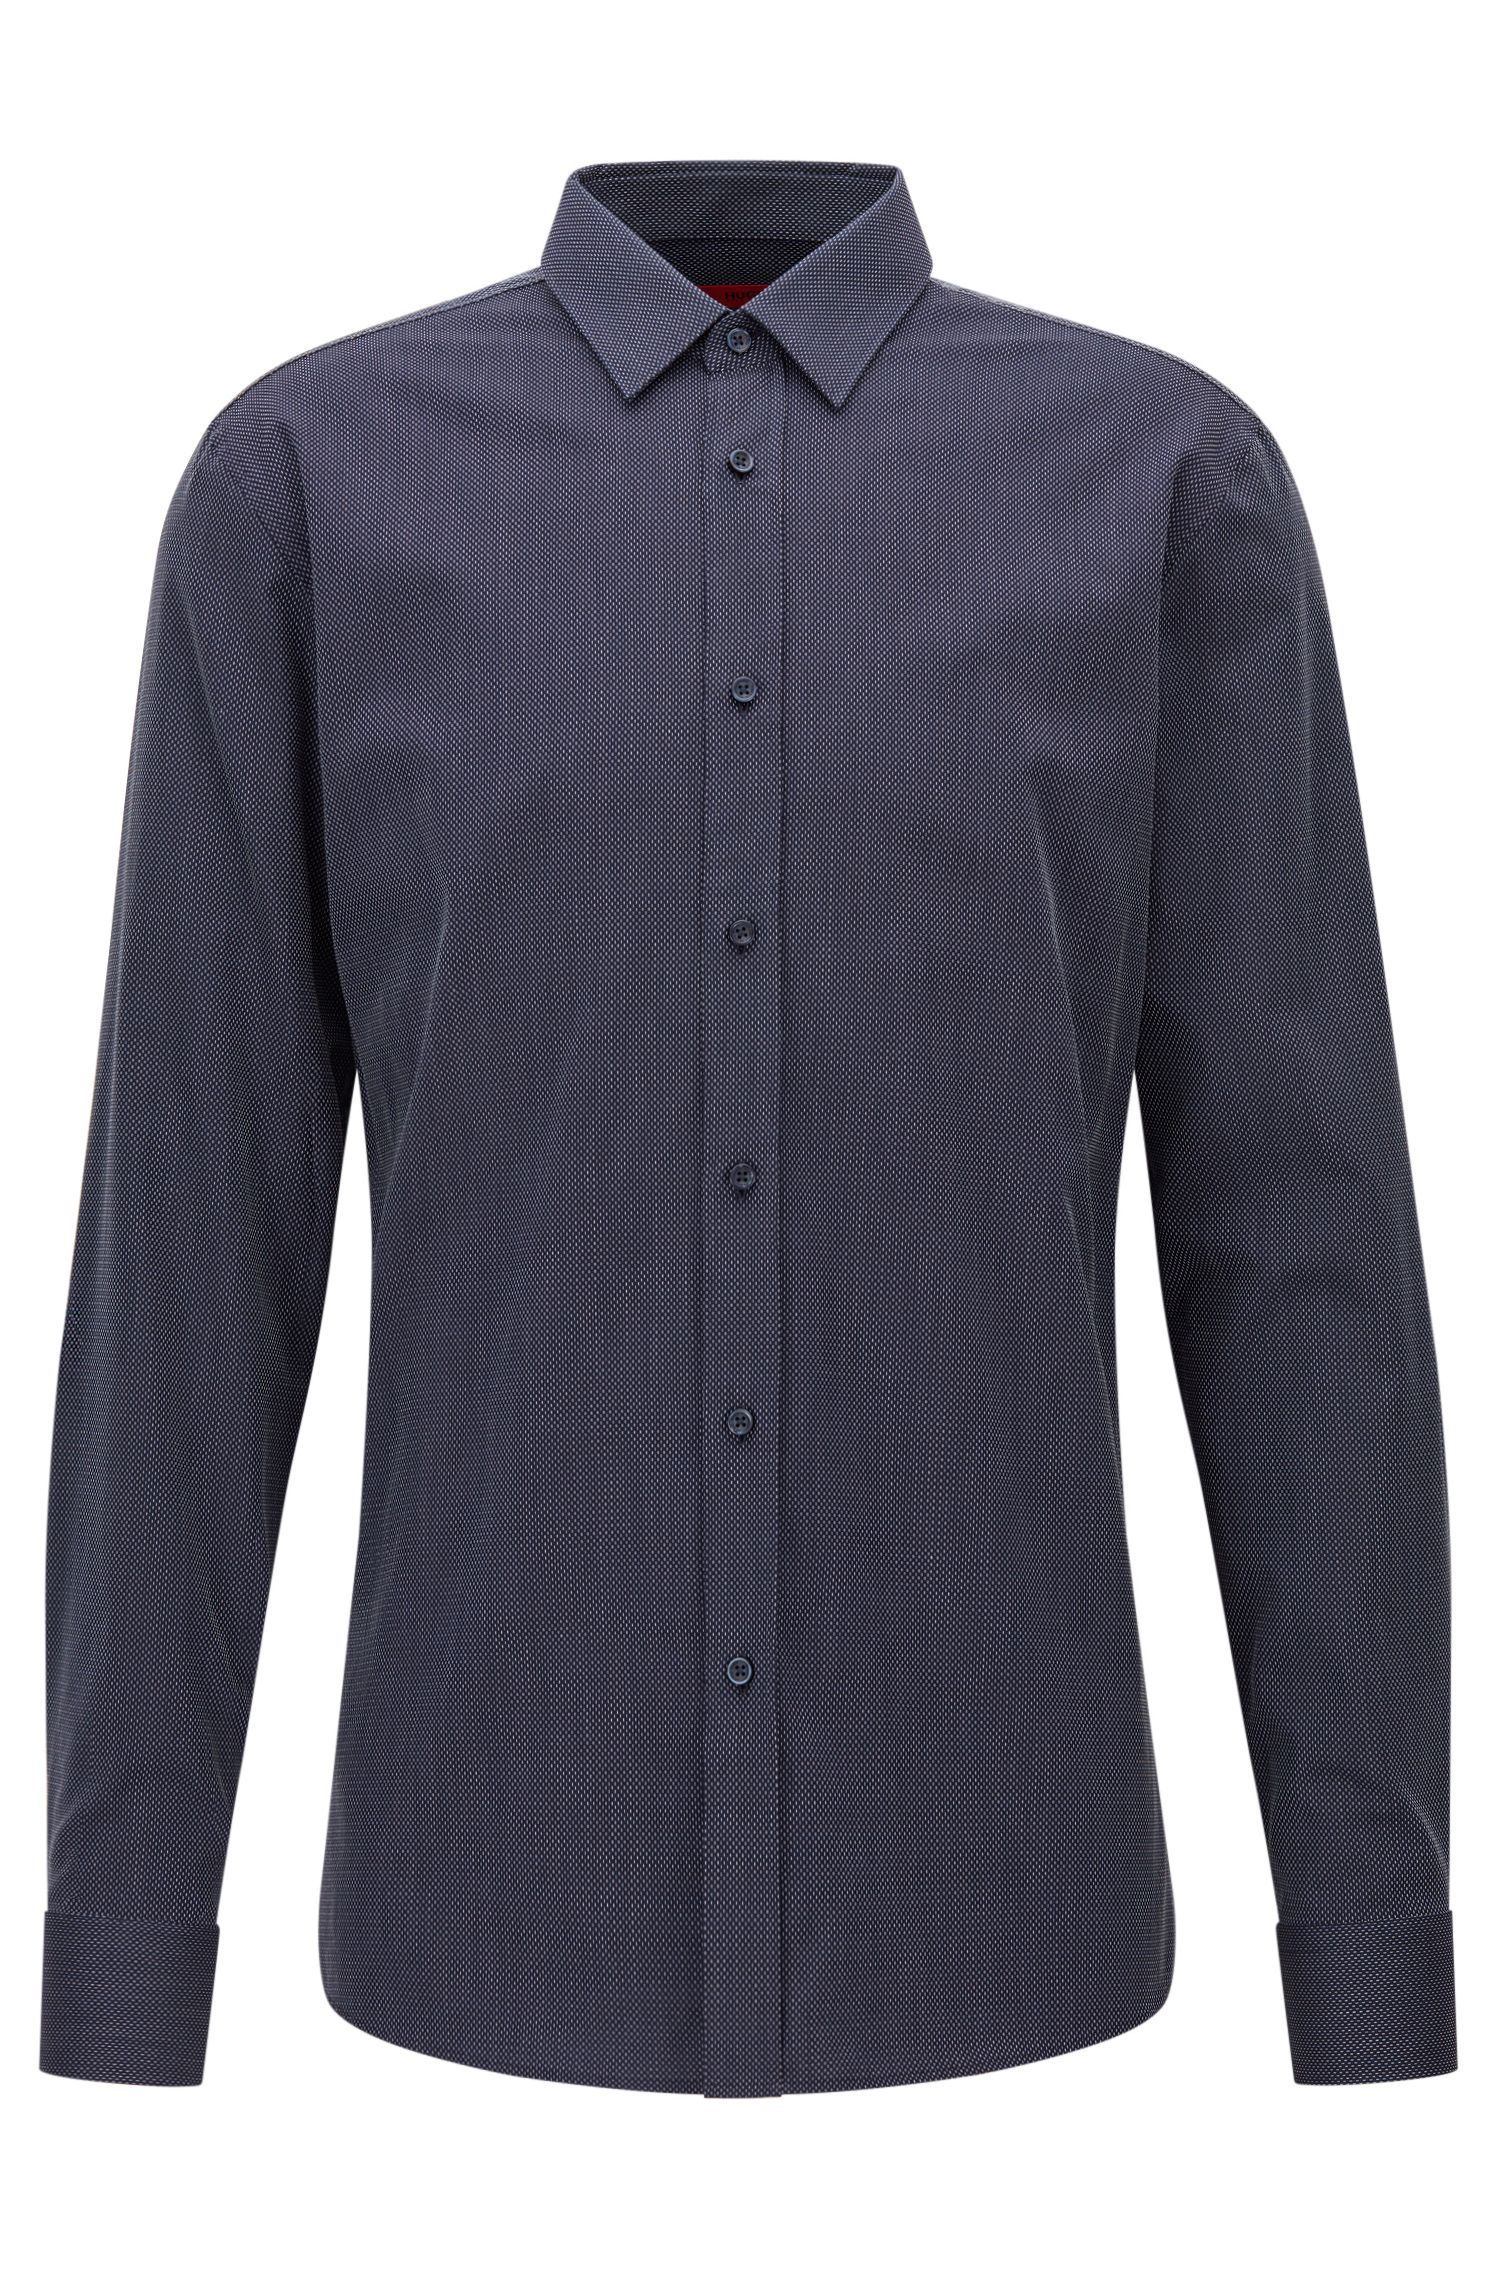 Micro-structured cotton shirt in a slim fit